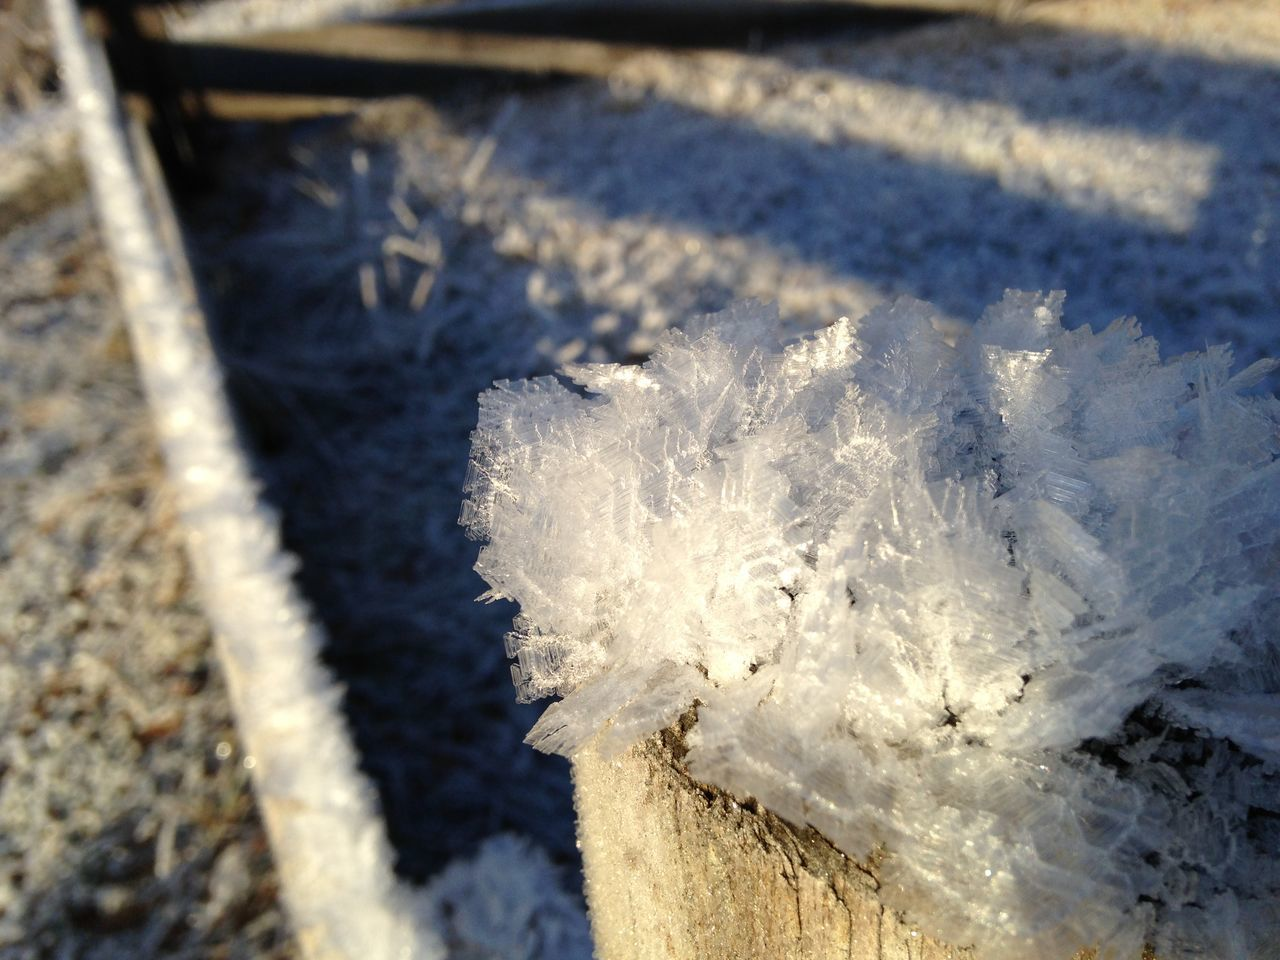 Close-up Cold Temperature Day Focus On Foreground Frozen Ice Leaves No People Outdoors Snow Winter